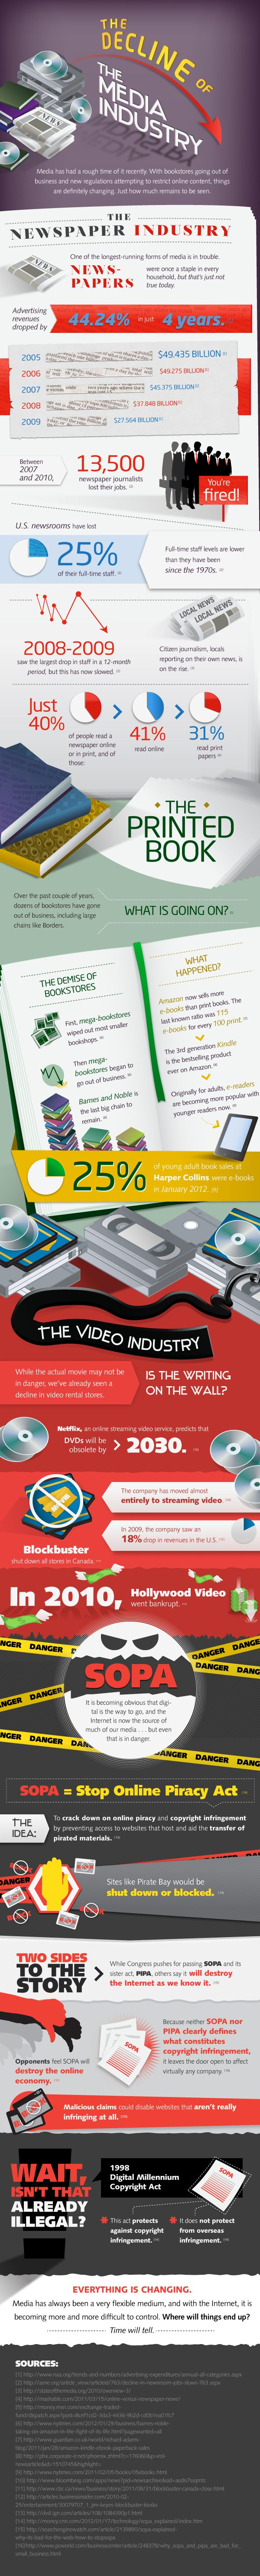 Decline of the Media Industry